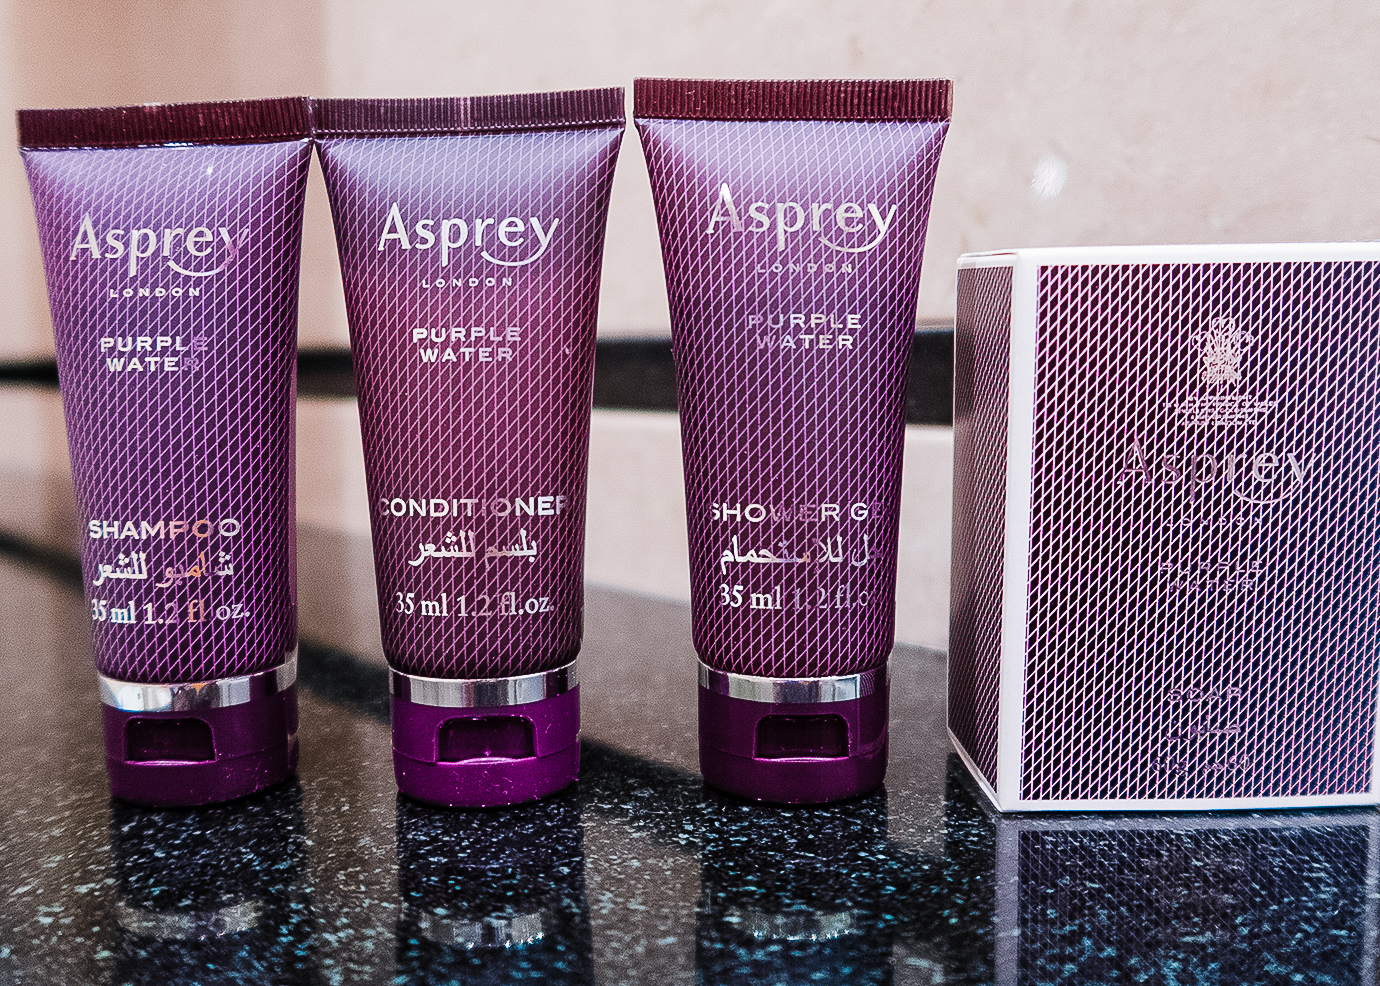 Asprey of London toiletries at Ritz Carlton of Saudi Arabia